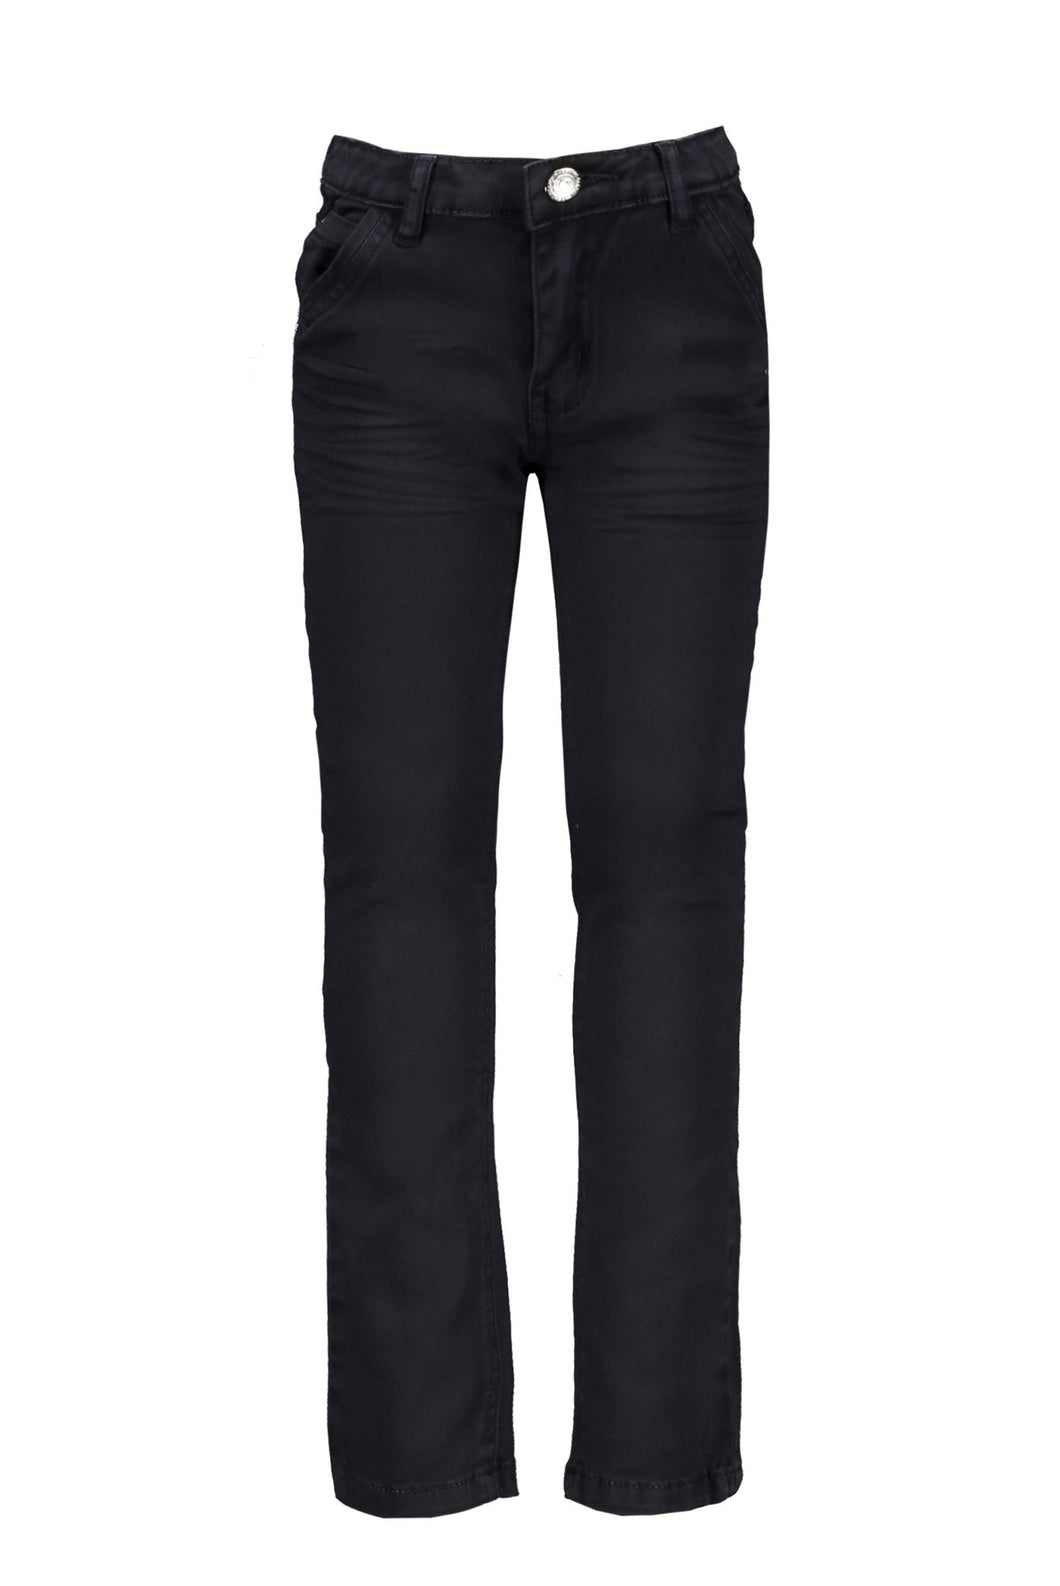 Le Chic Garcon Boys Classic Twill Chino Style Trousers - Navy